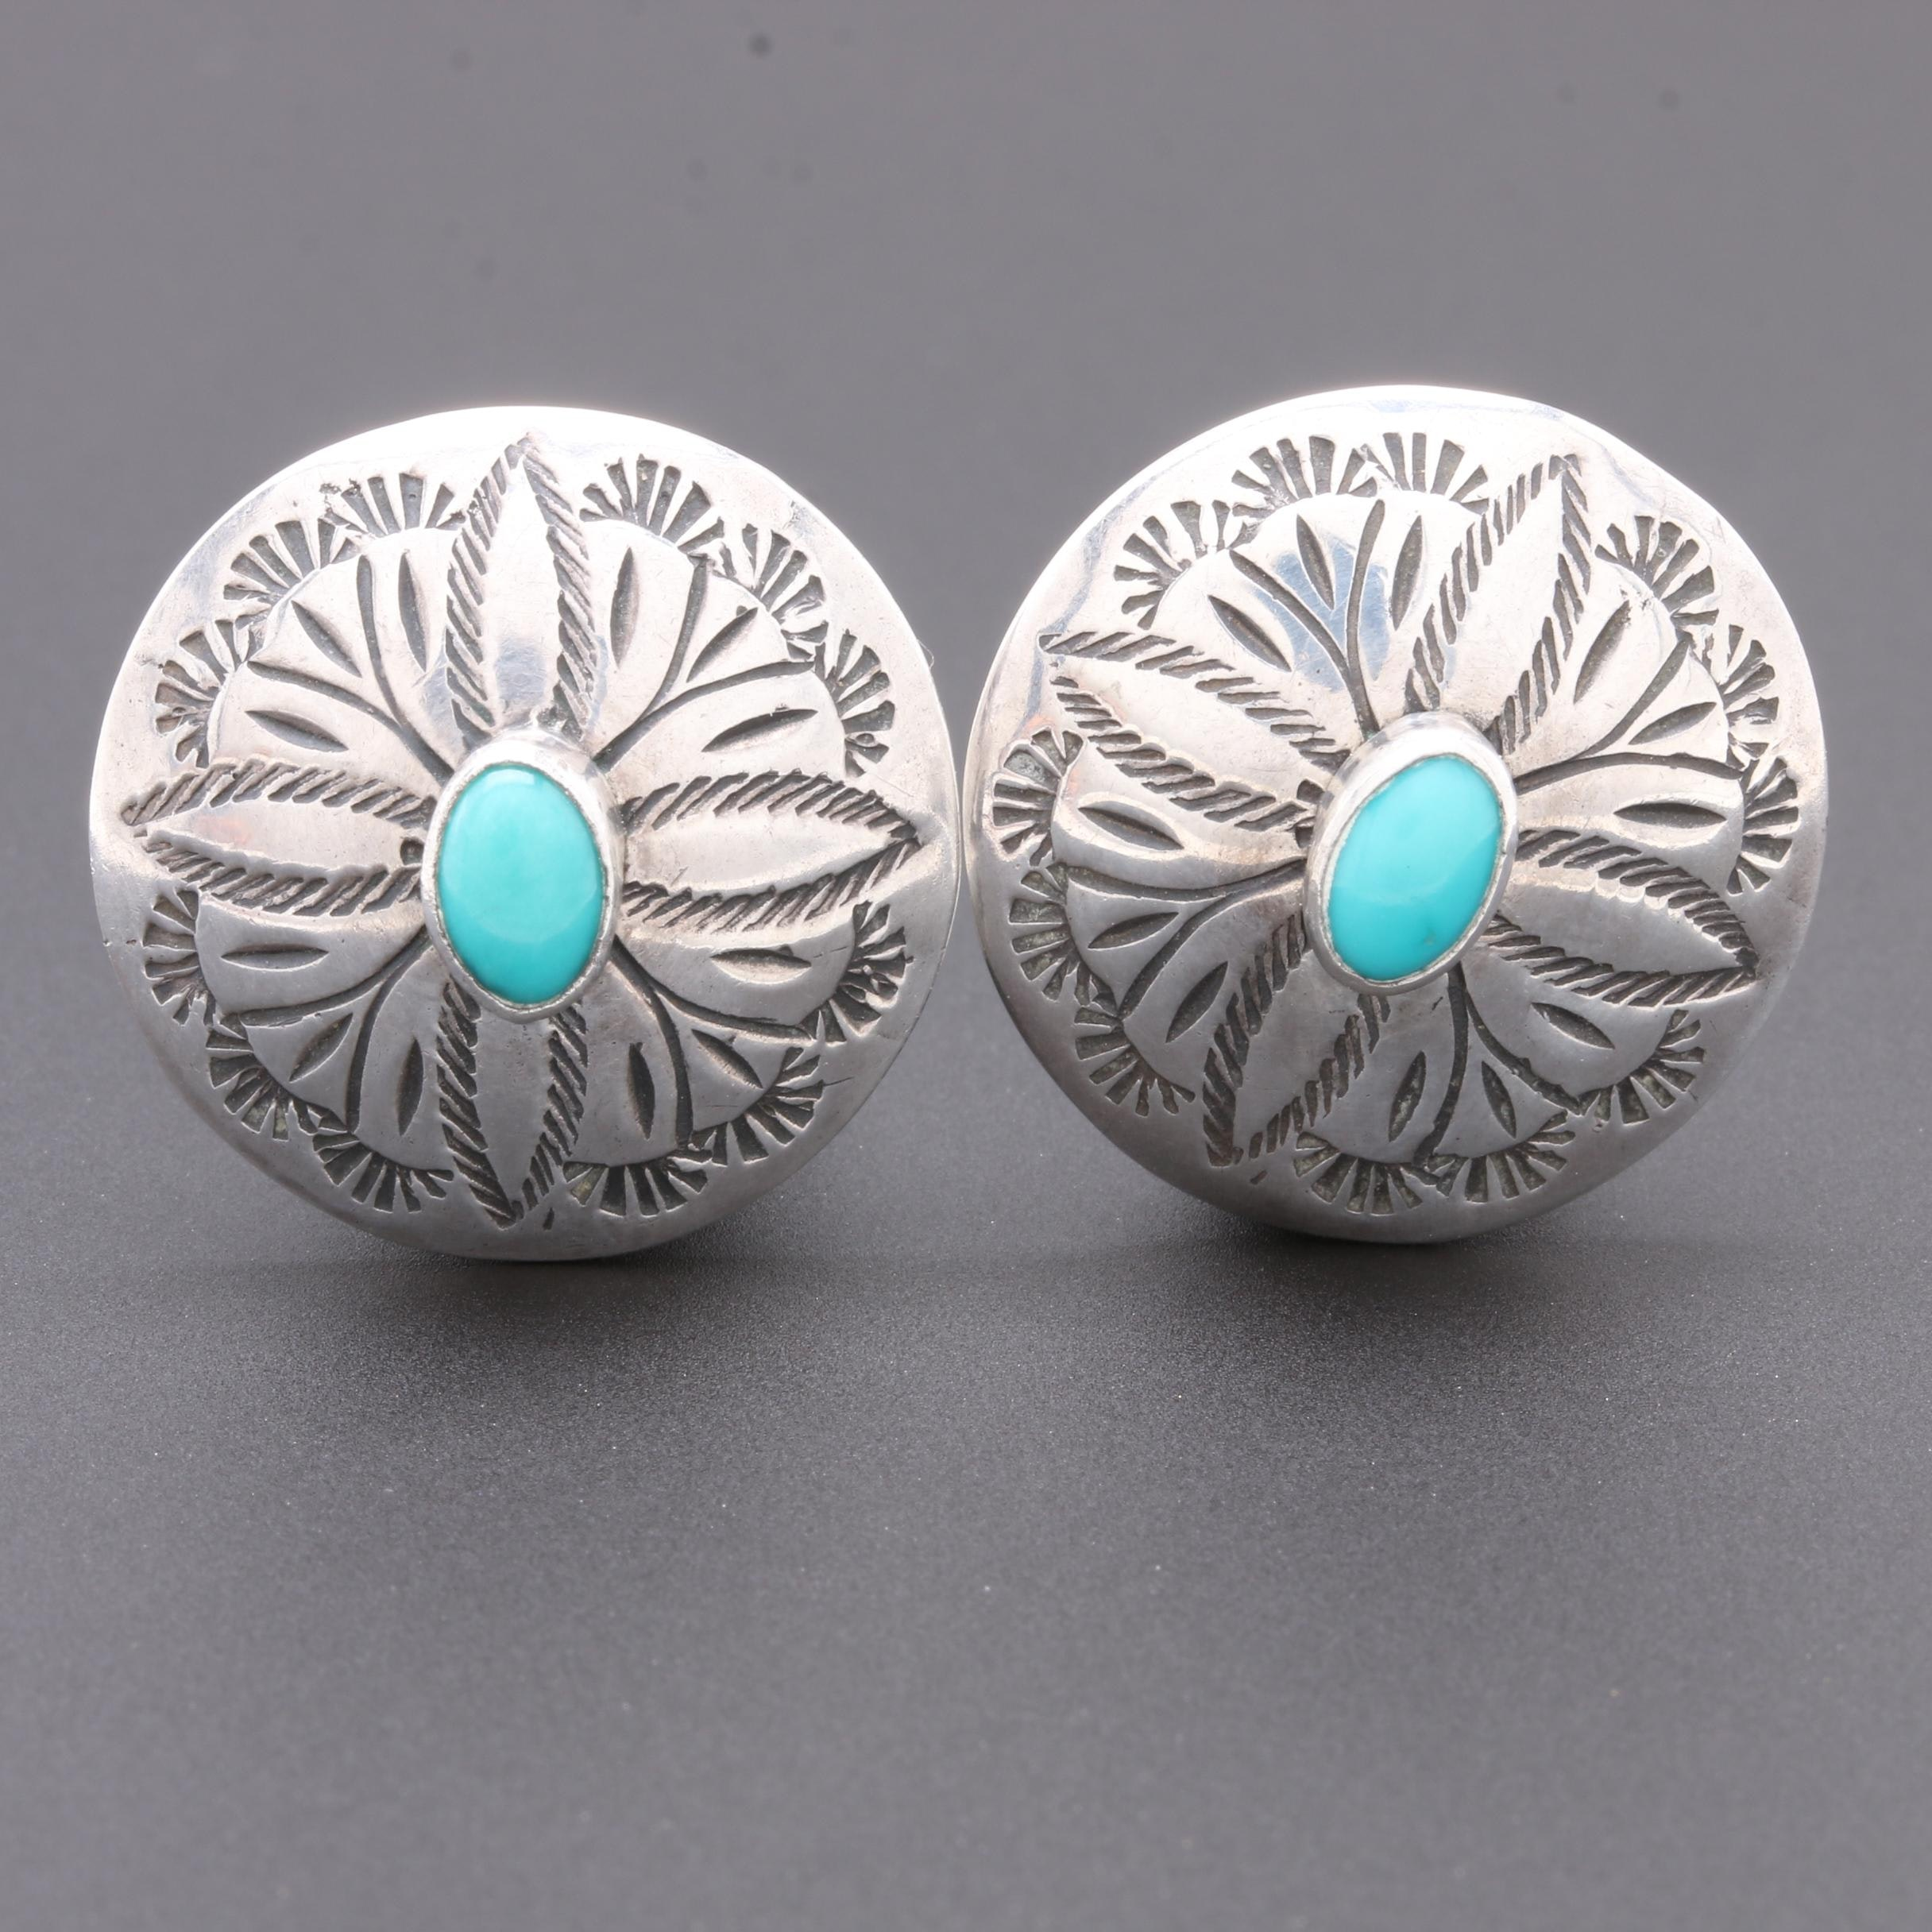 Selena Jake Navajo Diné Sterling Silver Turquoise Concho Earrings